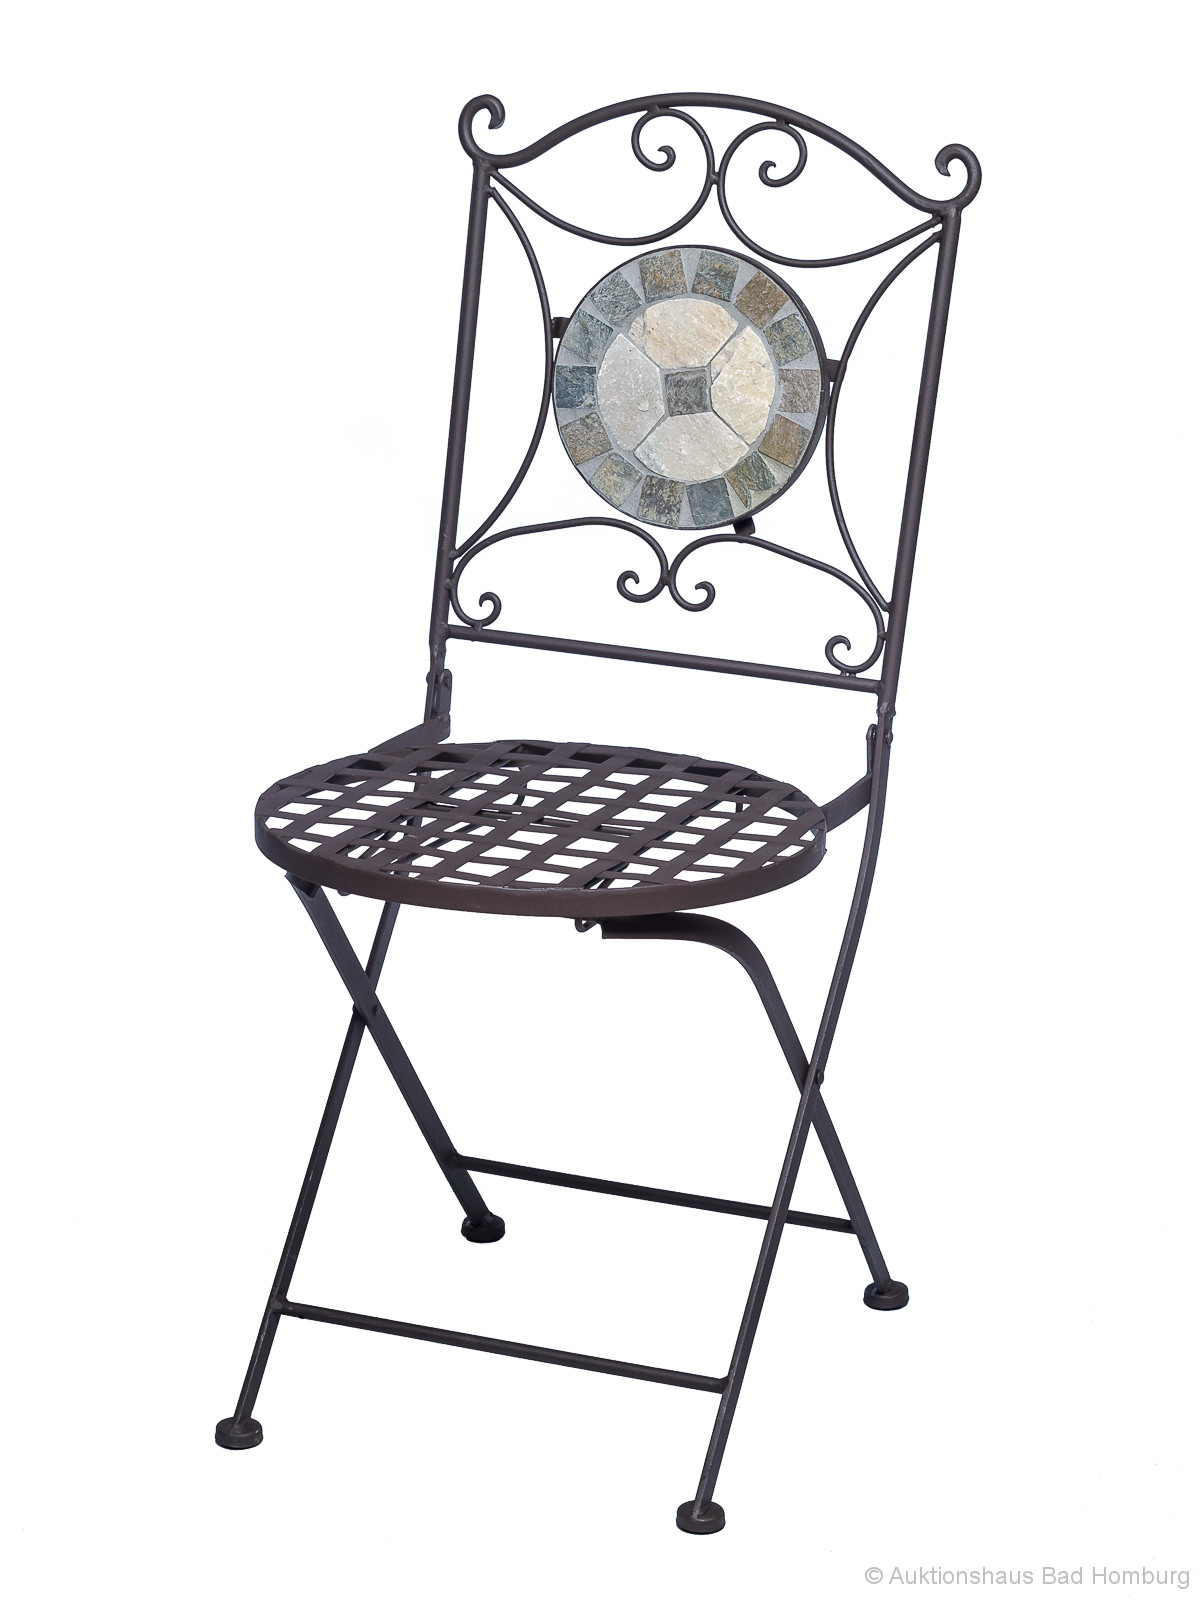 Mosaik Bad Set Set Garden Table And 2 Chairs Iron Tile Mosaic Garden Table Chair Antique Style